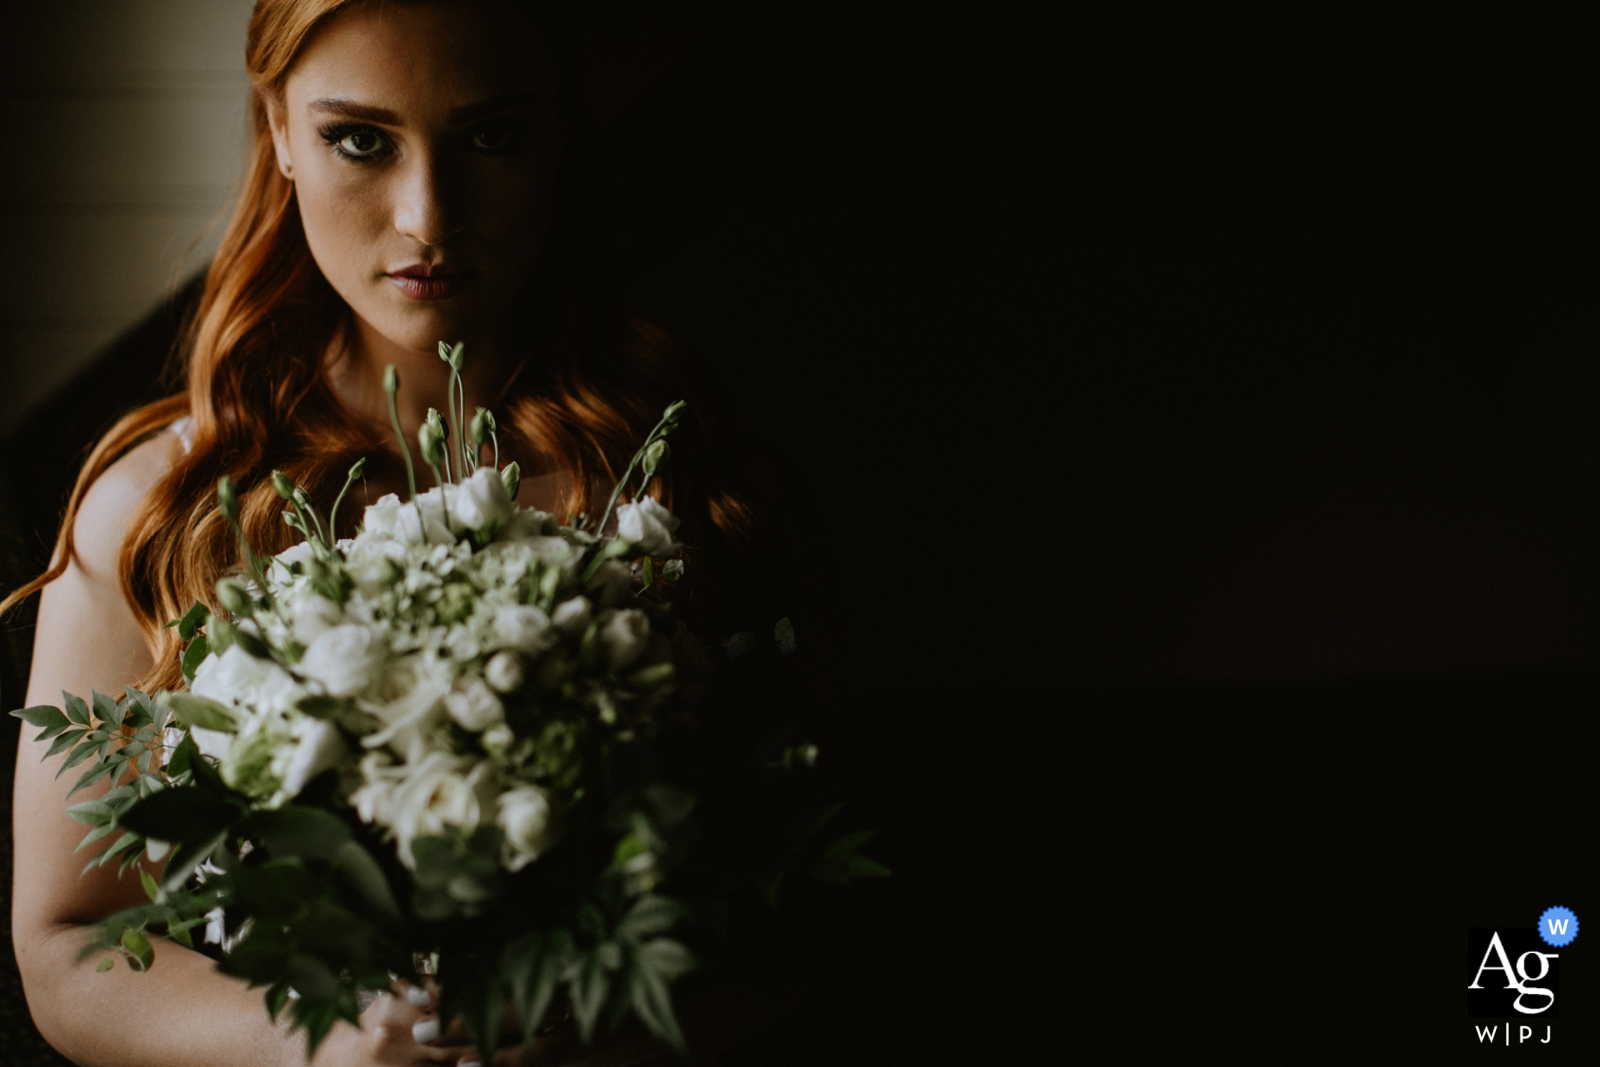 alto da capela - porto alegre - brasil wedding day photography | Portrait of the bride and her bouquet of flowers with a dramatic light